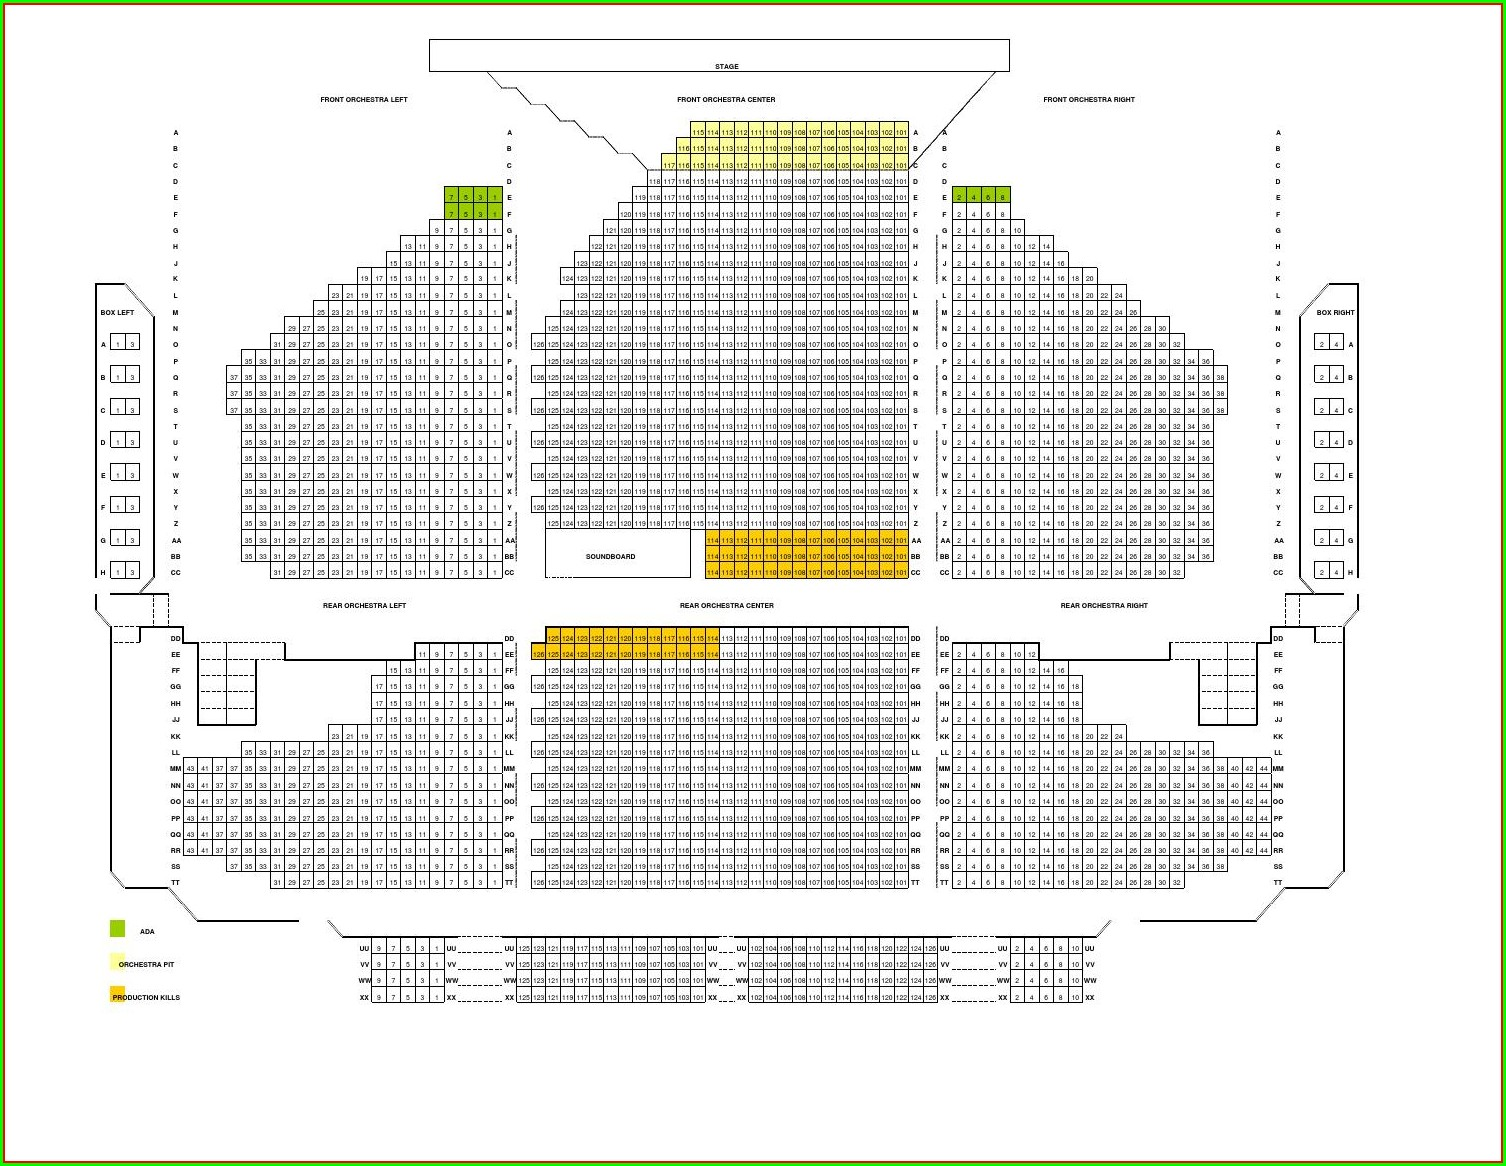 Keller Auditorium Seating Map